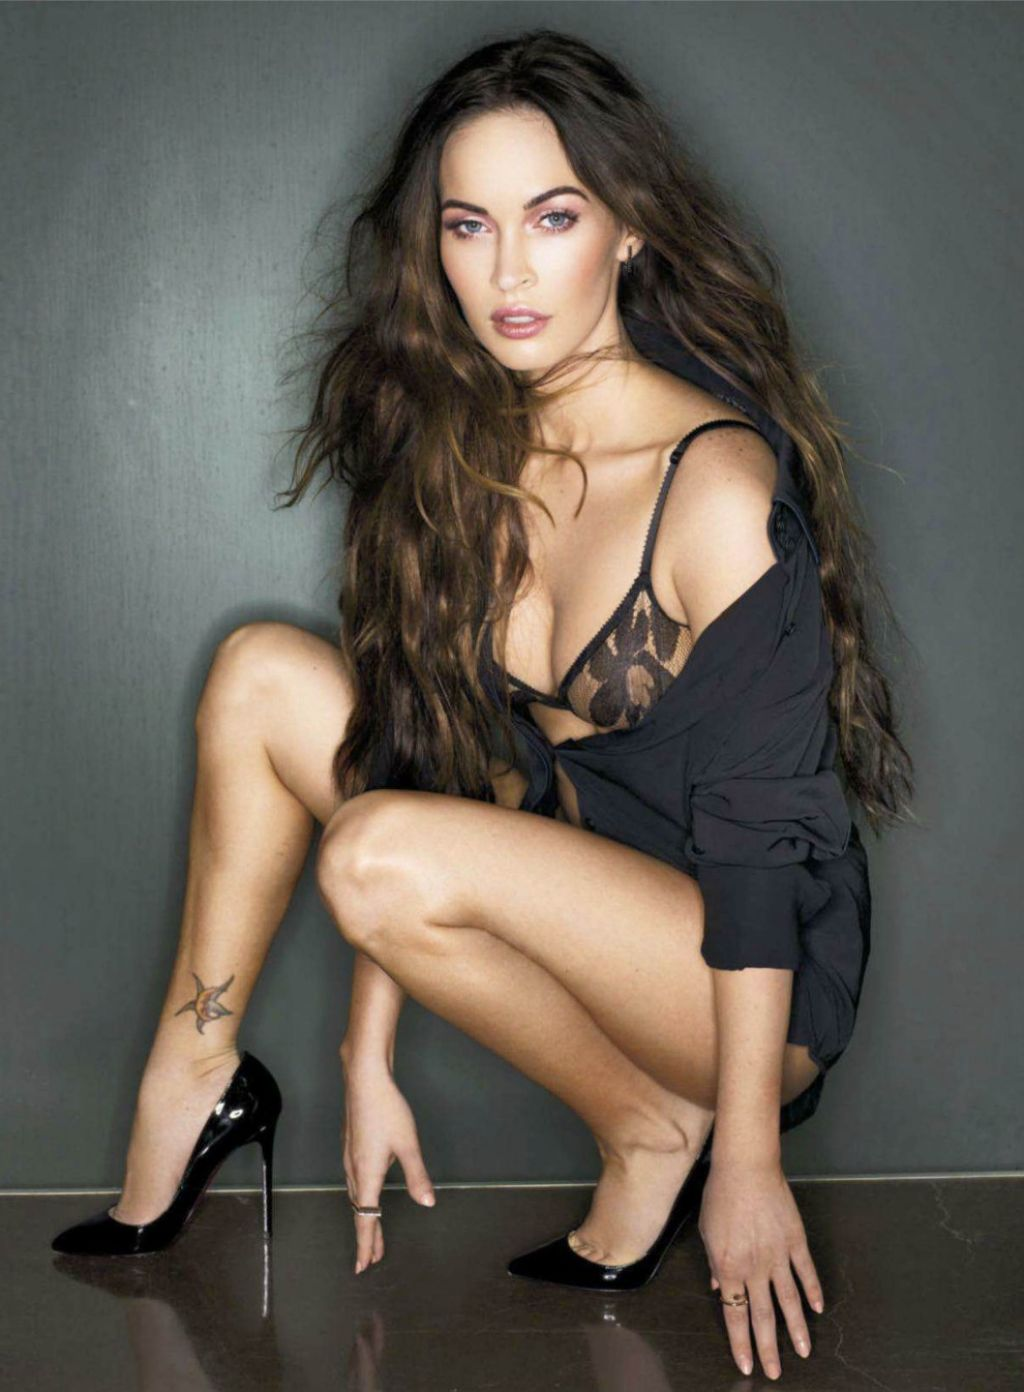 Megan Fox - ESQUIRE Magazine - February 2013 Issue